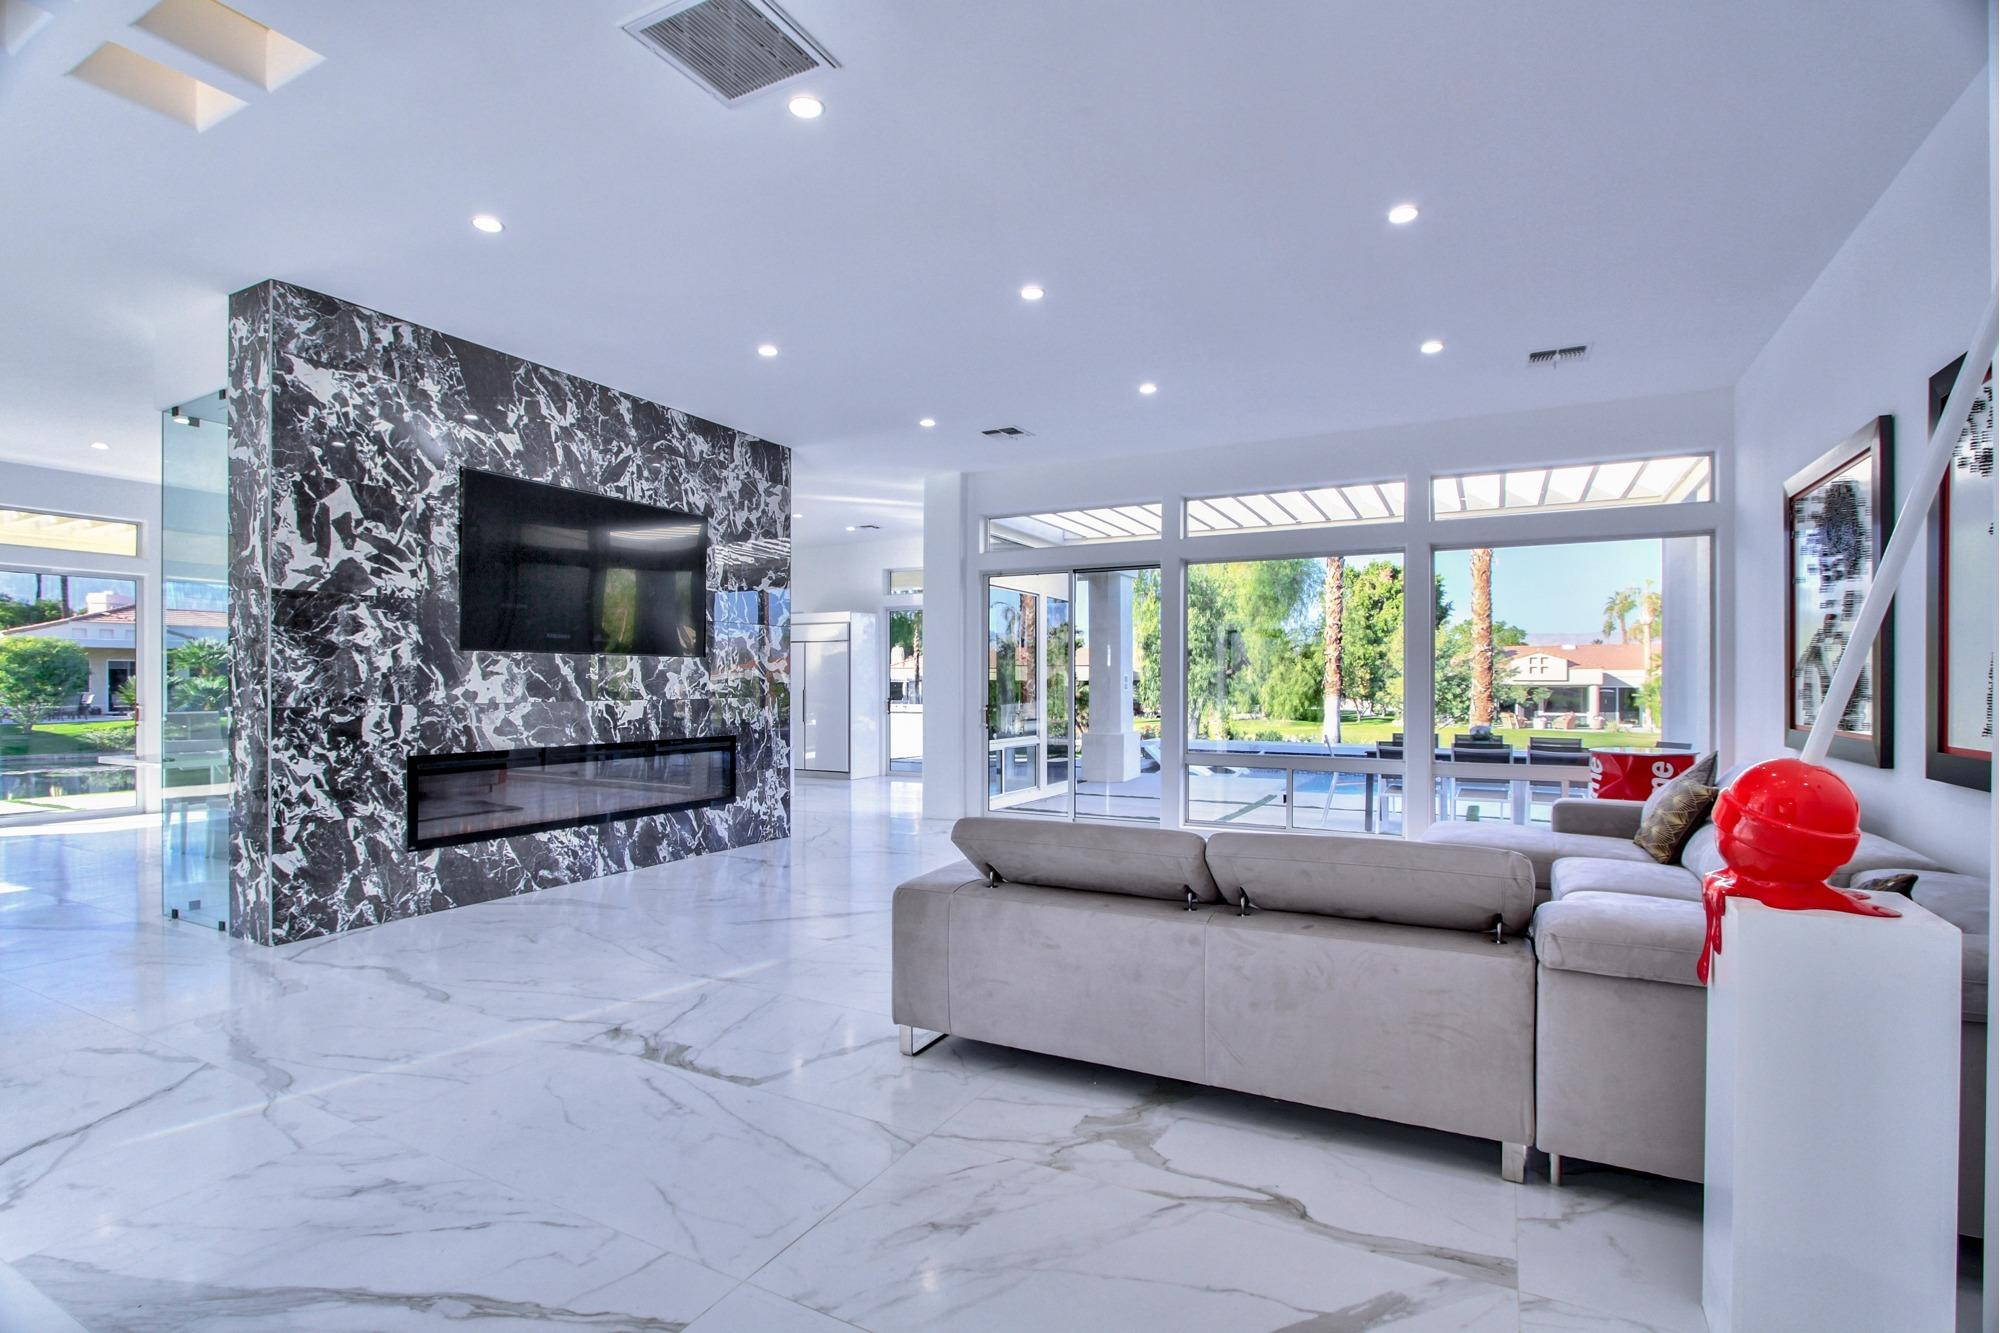 Phenomenal Modern Luxury Pool Home Reimagined In Heart Of Indian Wells. With 3,641 sq ft of beauty and perfection  this exquisite home overlooks a wrap around lake with western mountain views. 72' white porcelain tiles lace the floors of the home & walls of glass allow maximum natural light & gorgeous views from the entire house. This is a very open & flowing floor plan. The wine wall is a perfect exhibit over dining and sitting area with piano and fireplace. Spacious Master Suite with fireplace opens to pool area. The lavish master bathroom rivals the most luxurious spa with oversized walk in shower, l.e.d. lit spa & dual walk in closets.  Great separation of rooms for all 3 additional en suite bedrooms.  Casita with kitchenette. The outdoor living space is designed with day & evening entertainment in mind. Large pool with tanning deck, colored lighting & fire feature with backdrop of the lake. The outdoor kitchen and fire pit of wrap around patio overlook the western and southern mountains that surround us. Desert Horizon is a prestigious golf community with 24 hr high level security, clubhouse, gym & a very active social lifestyle. We are located minutes from world famous El Paseo Drive and all of it's wonderful shopping and dining. Don't miss this one! Call me today for a private showing.